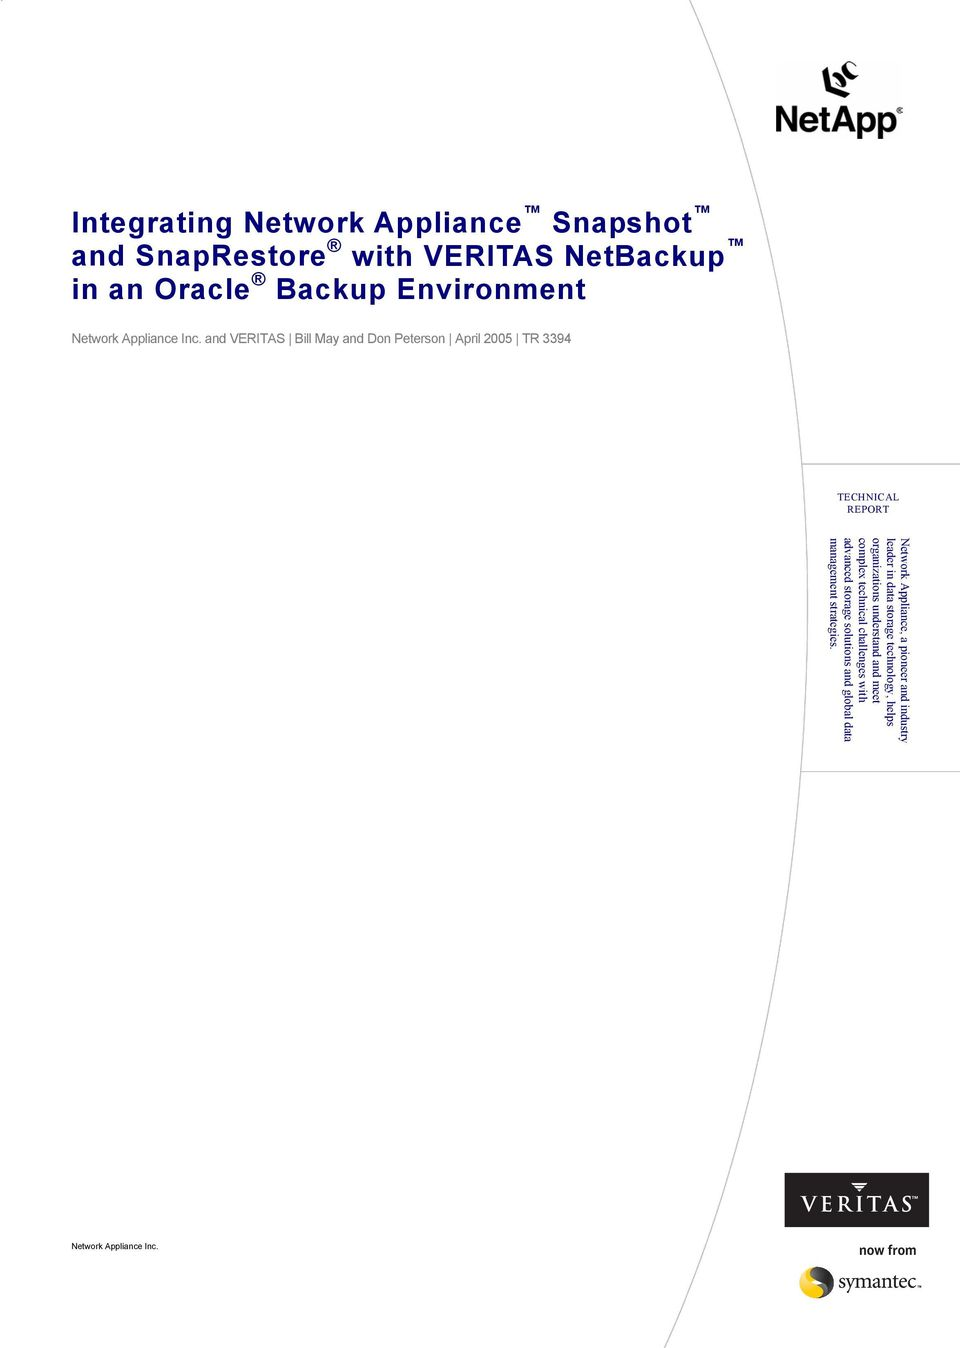 and VERITAS Bill May and Don Peterson April 2005 TR 3394 TECHNICAL REPORT Network Appliance, a pioneer and